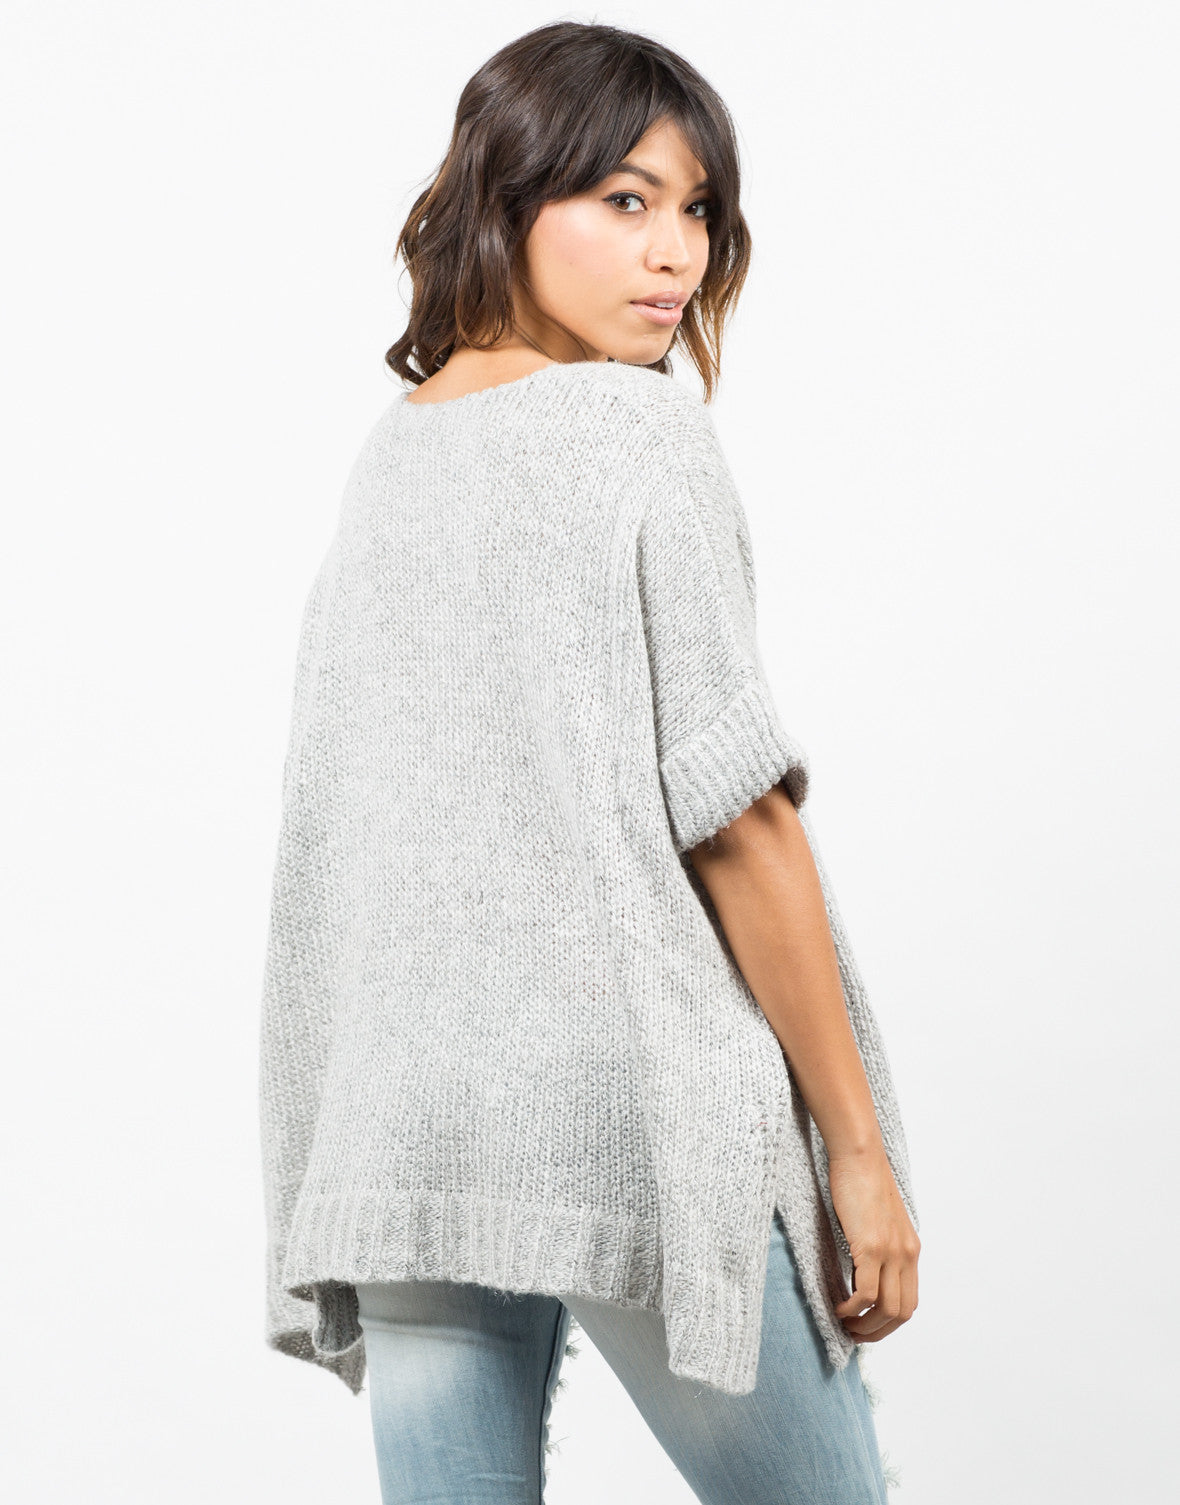 Back View of Thick Knit Sweater Tee